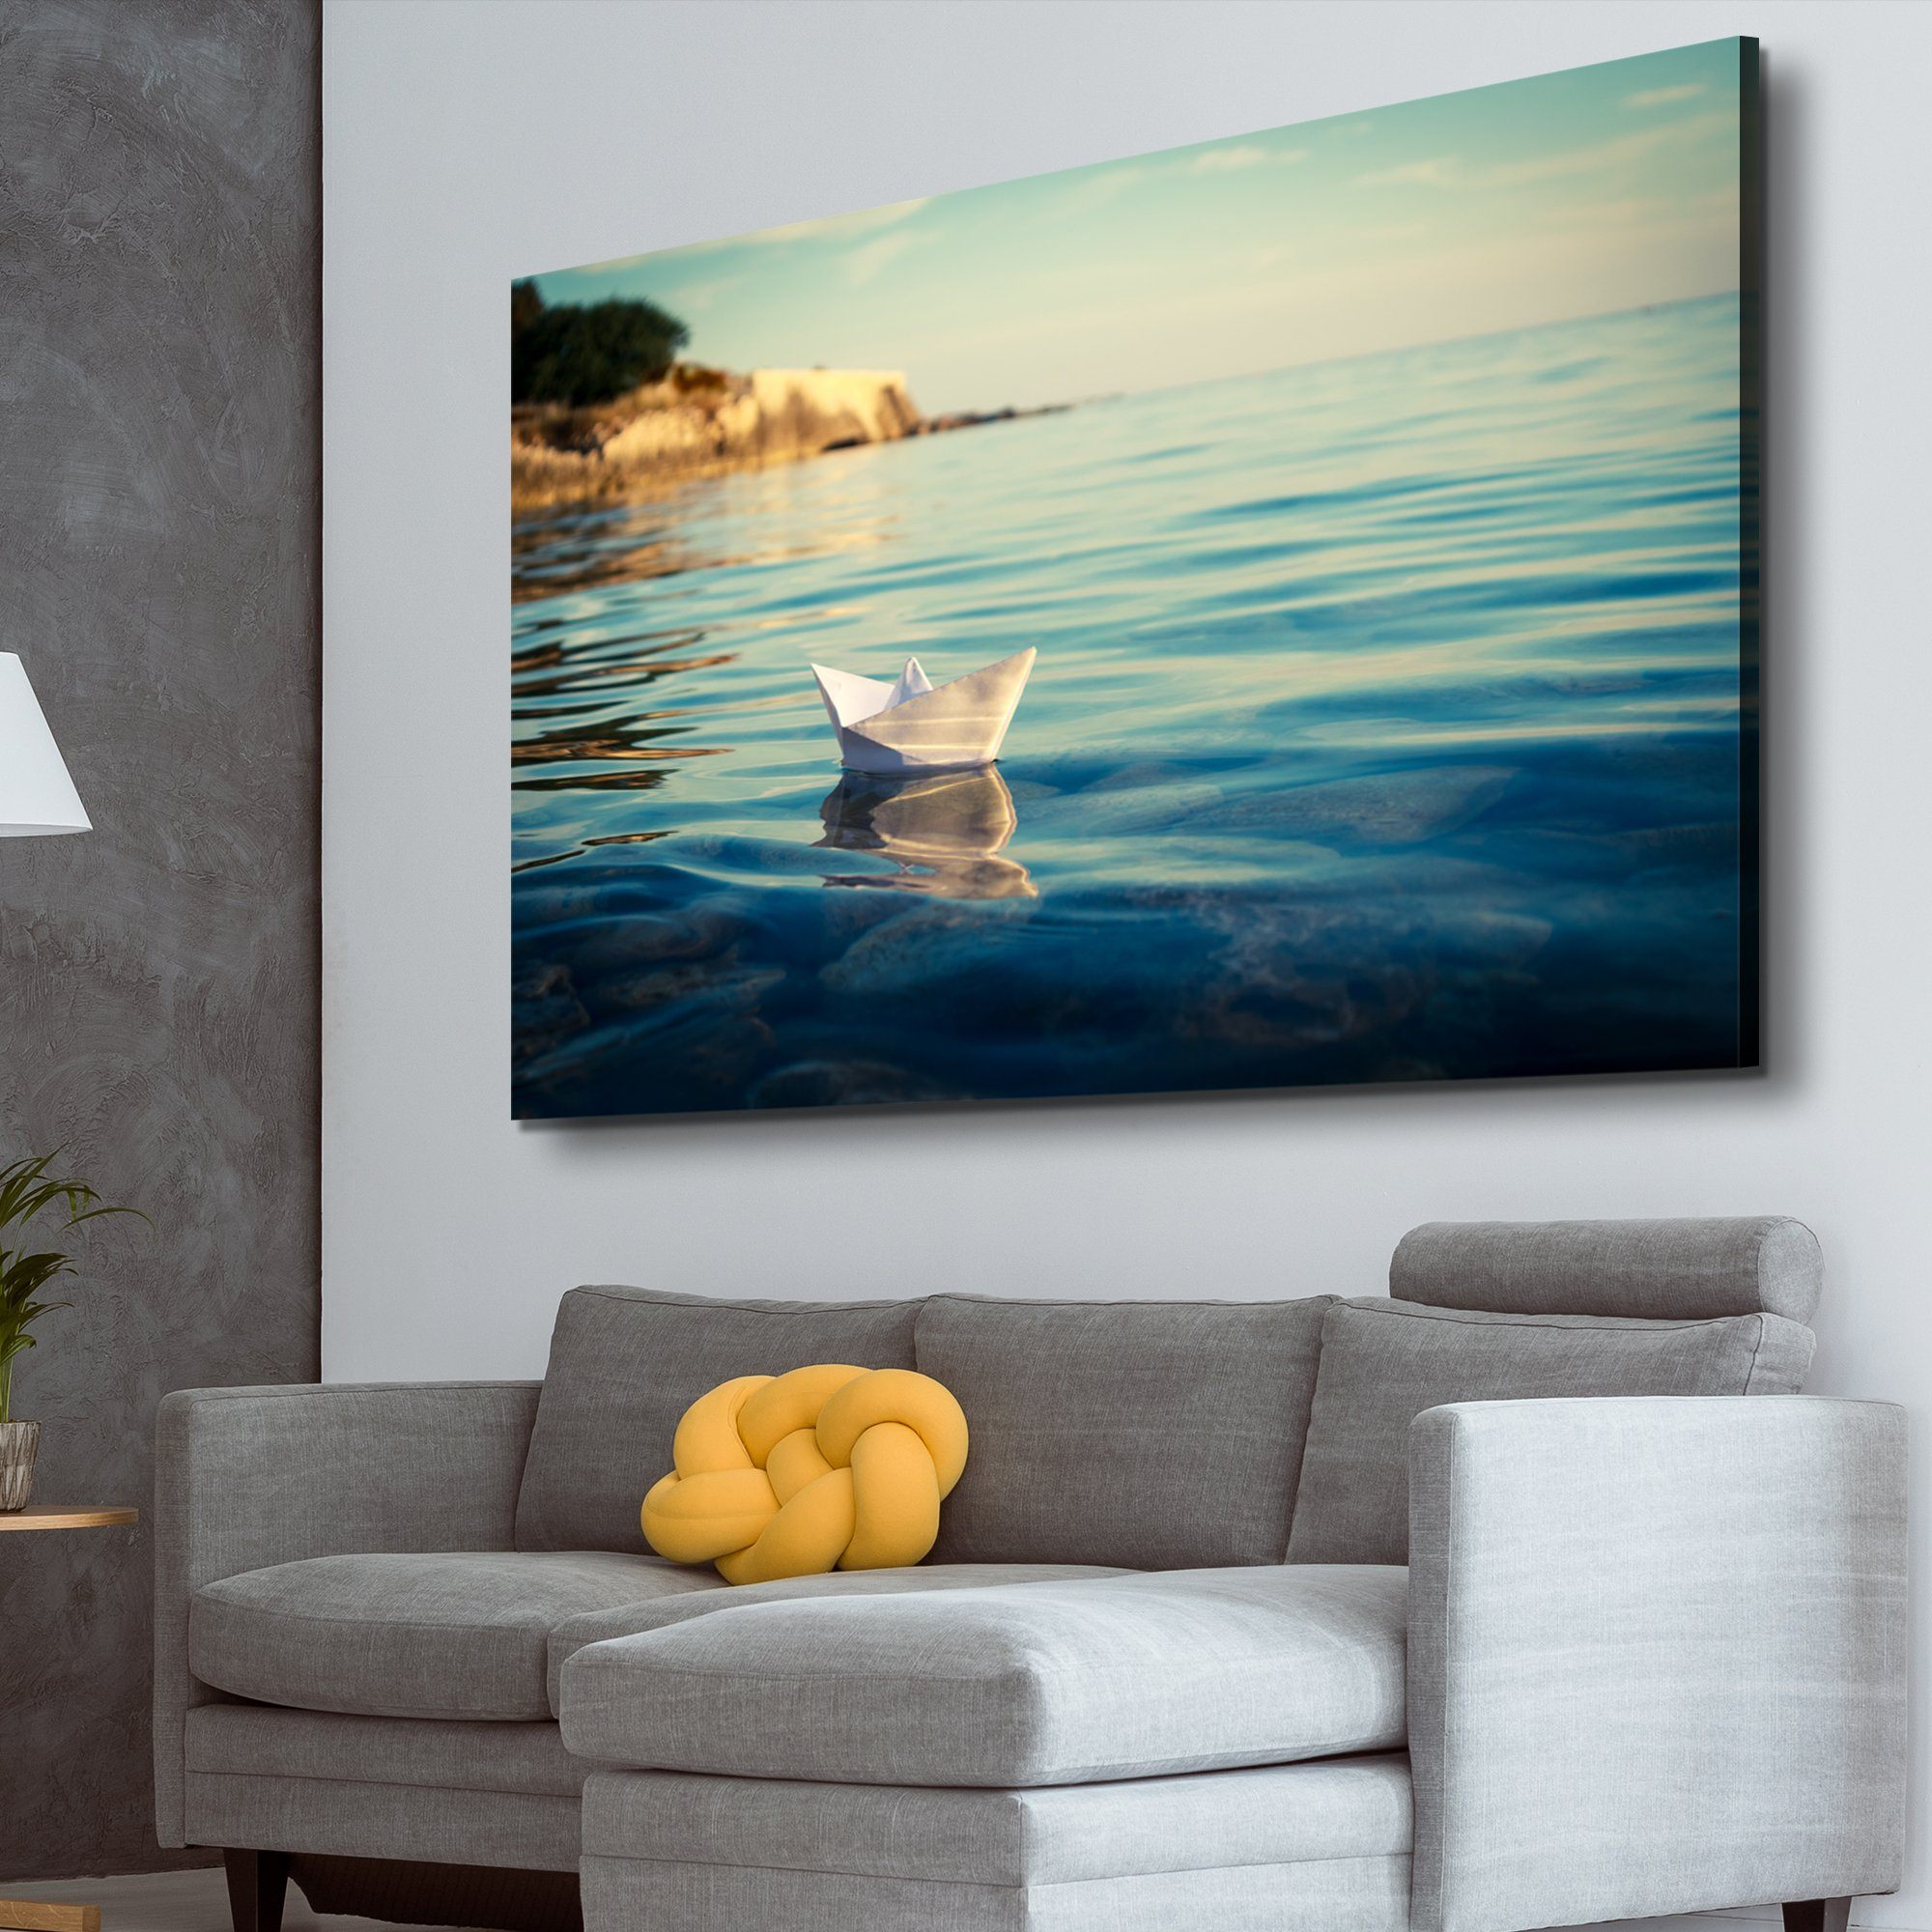 Origami Paper Boat living room wall art